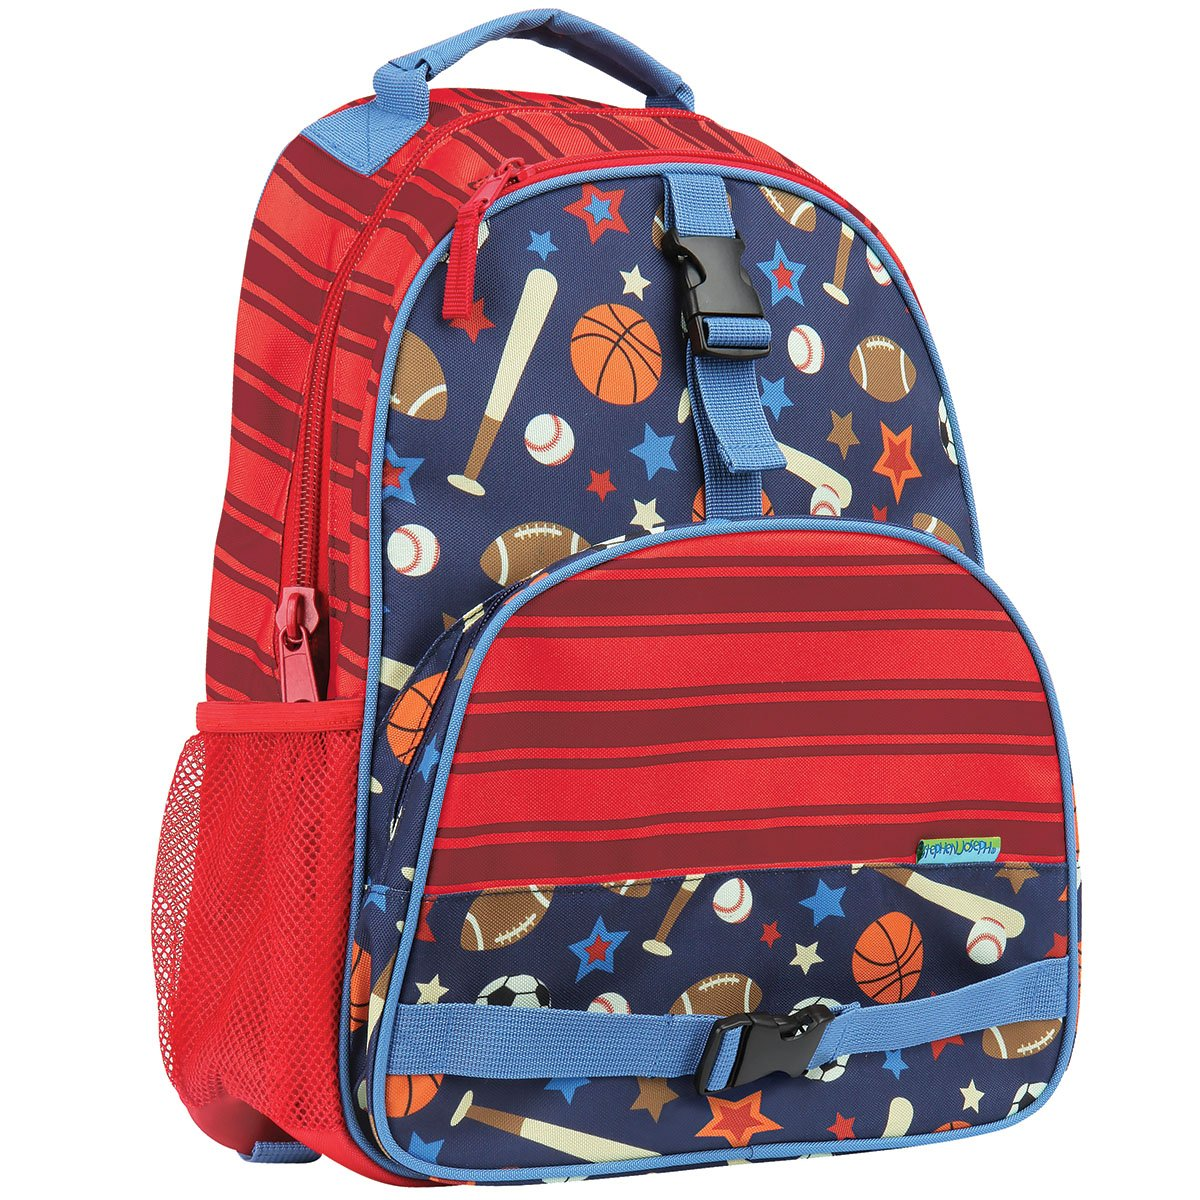 Stephen Joseph Big Boy's All Over Print Backpack, Accessory, Shark, No Size SJ112080